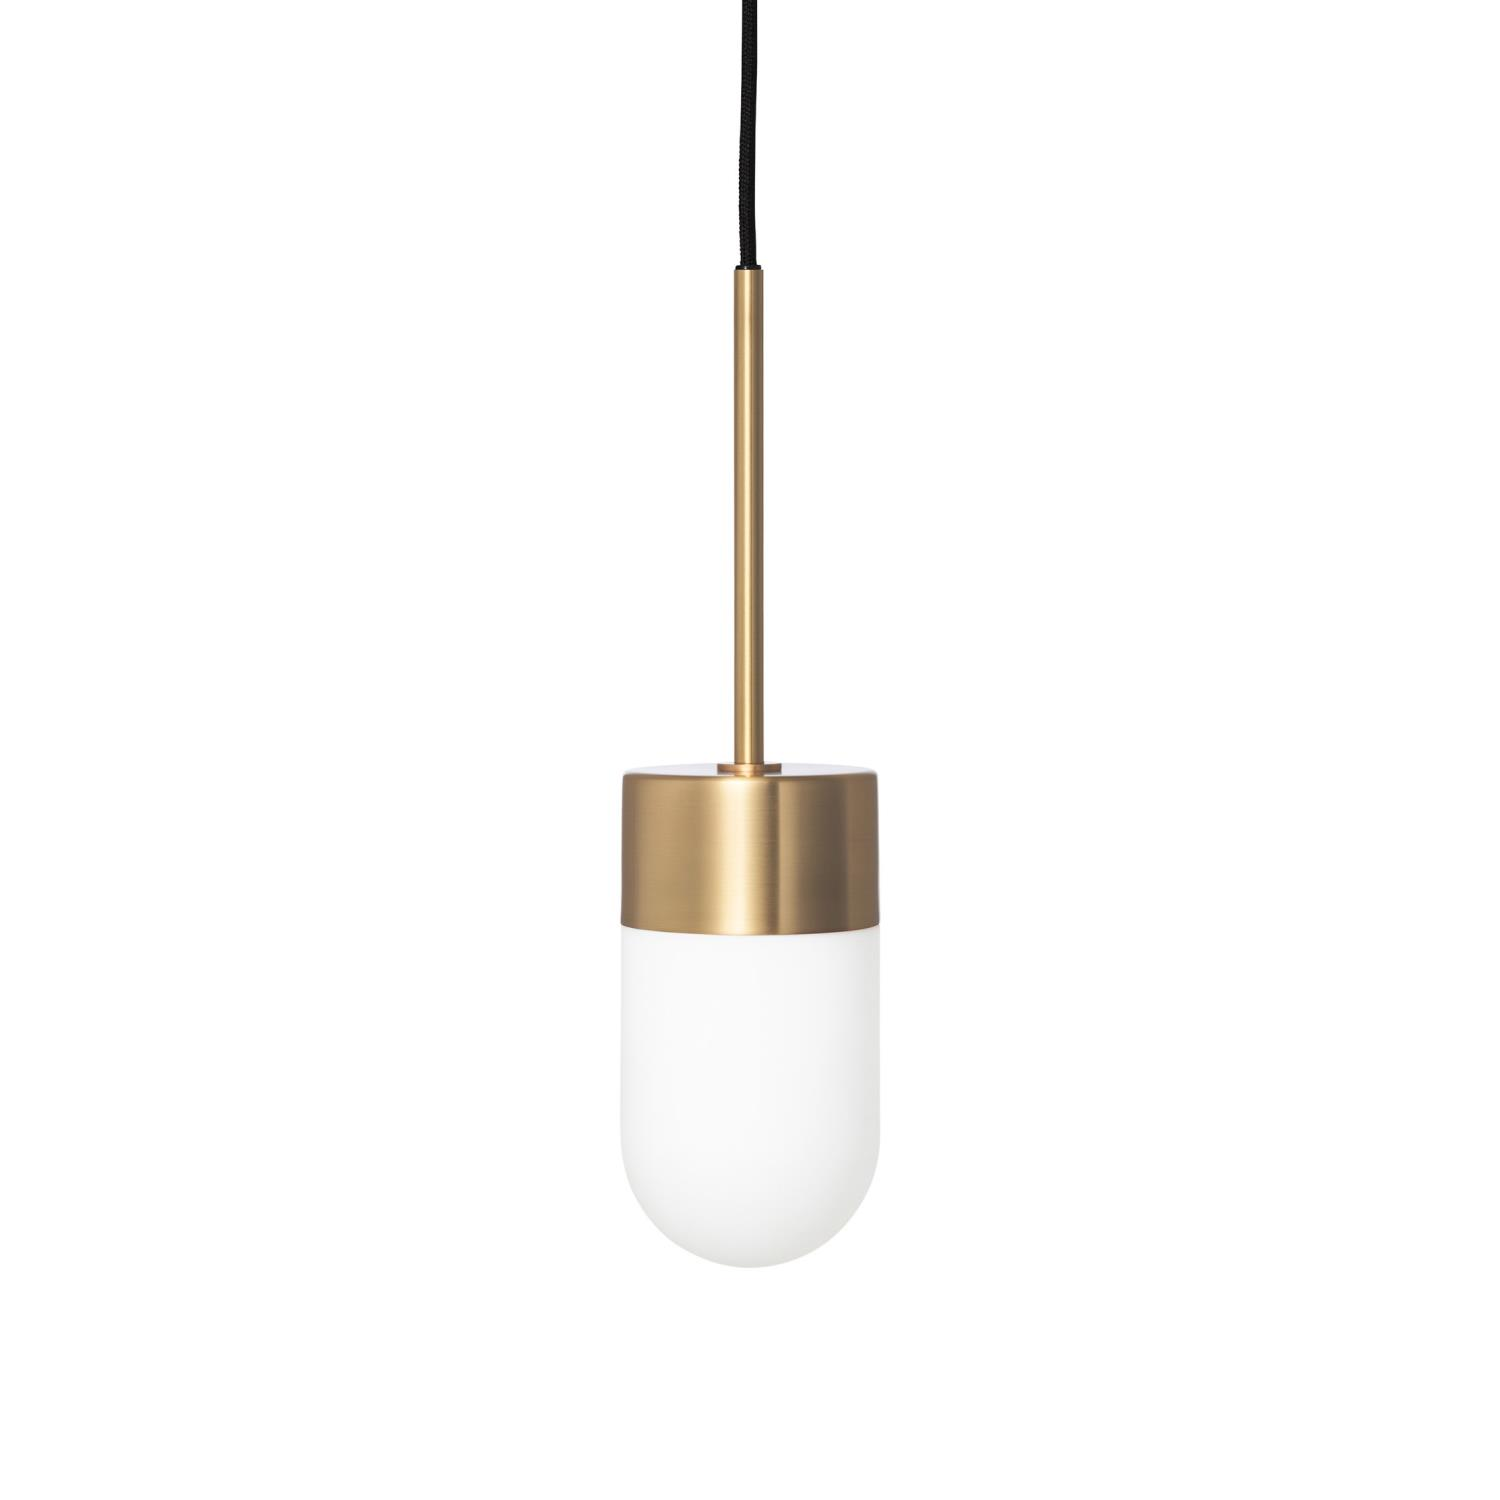 Vox Taklampe Messing/Opal